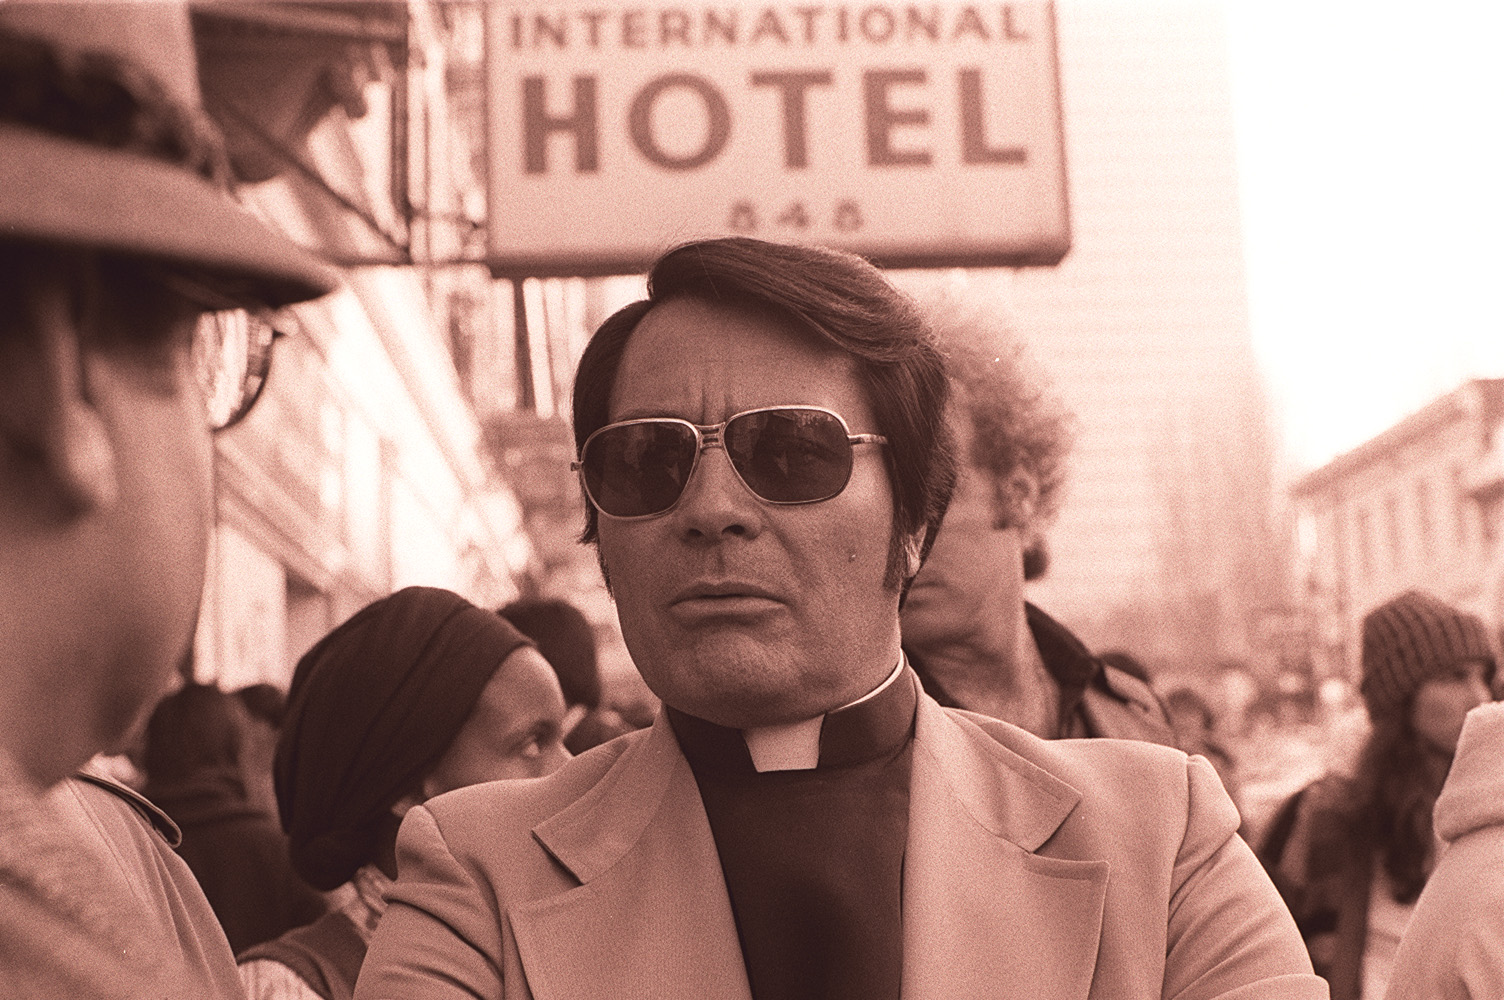 jim jone Jim jones promised paradise to his followers but the story of his jungle utopia  ended with the mass suicide of more than 900 people.